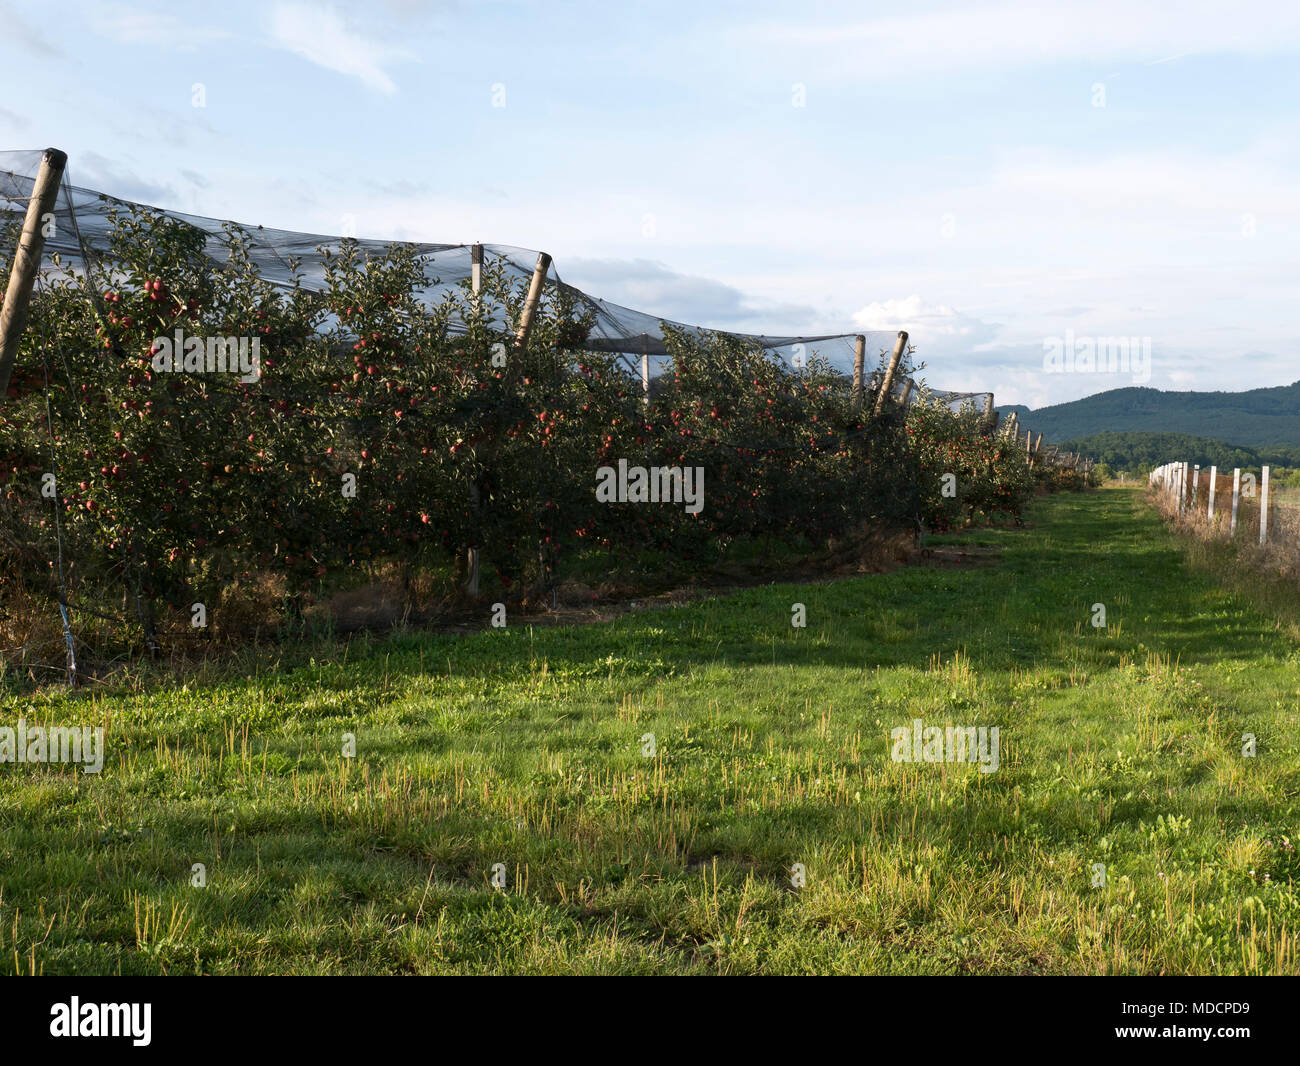 ripe apple orchard covered with protection net - Stock Image